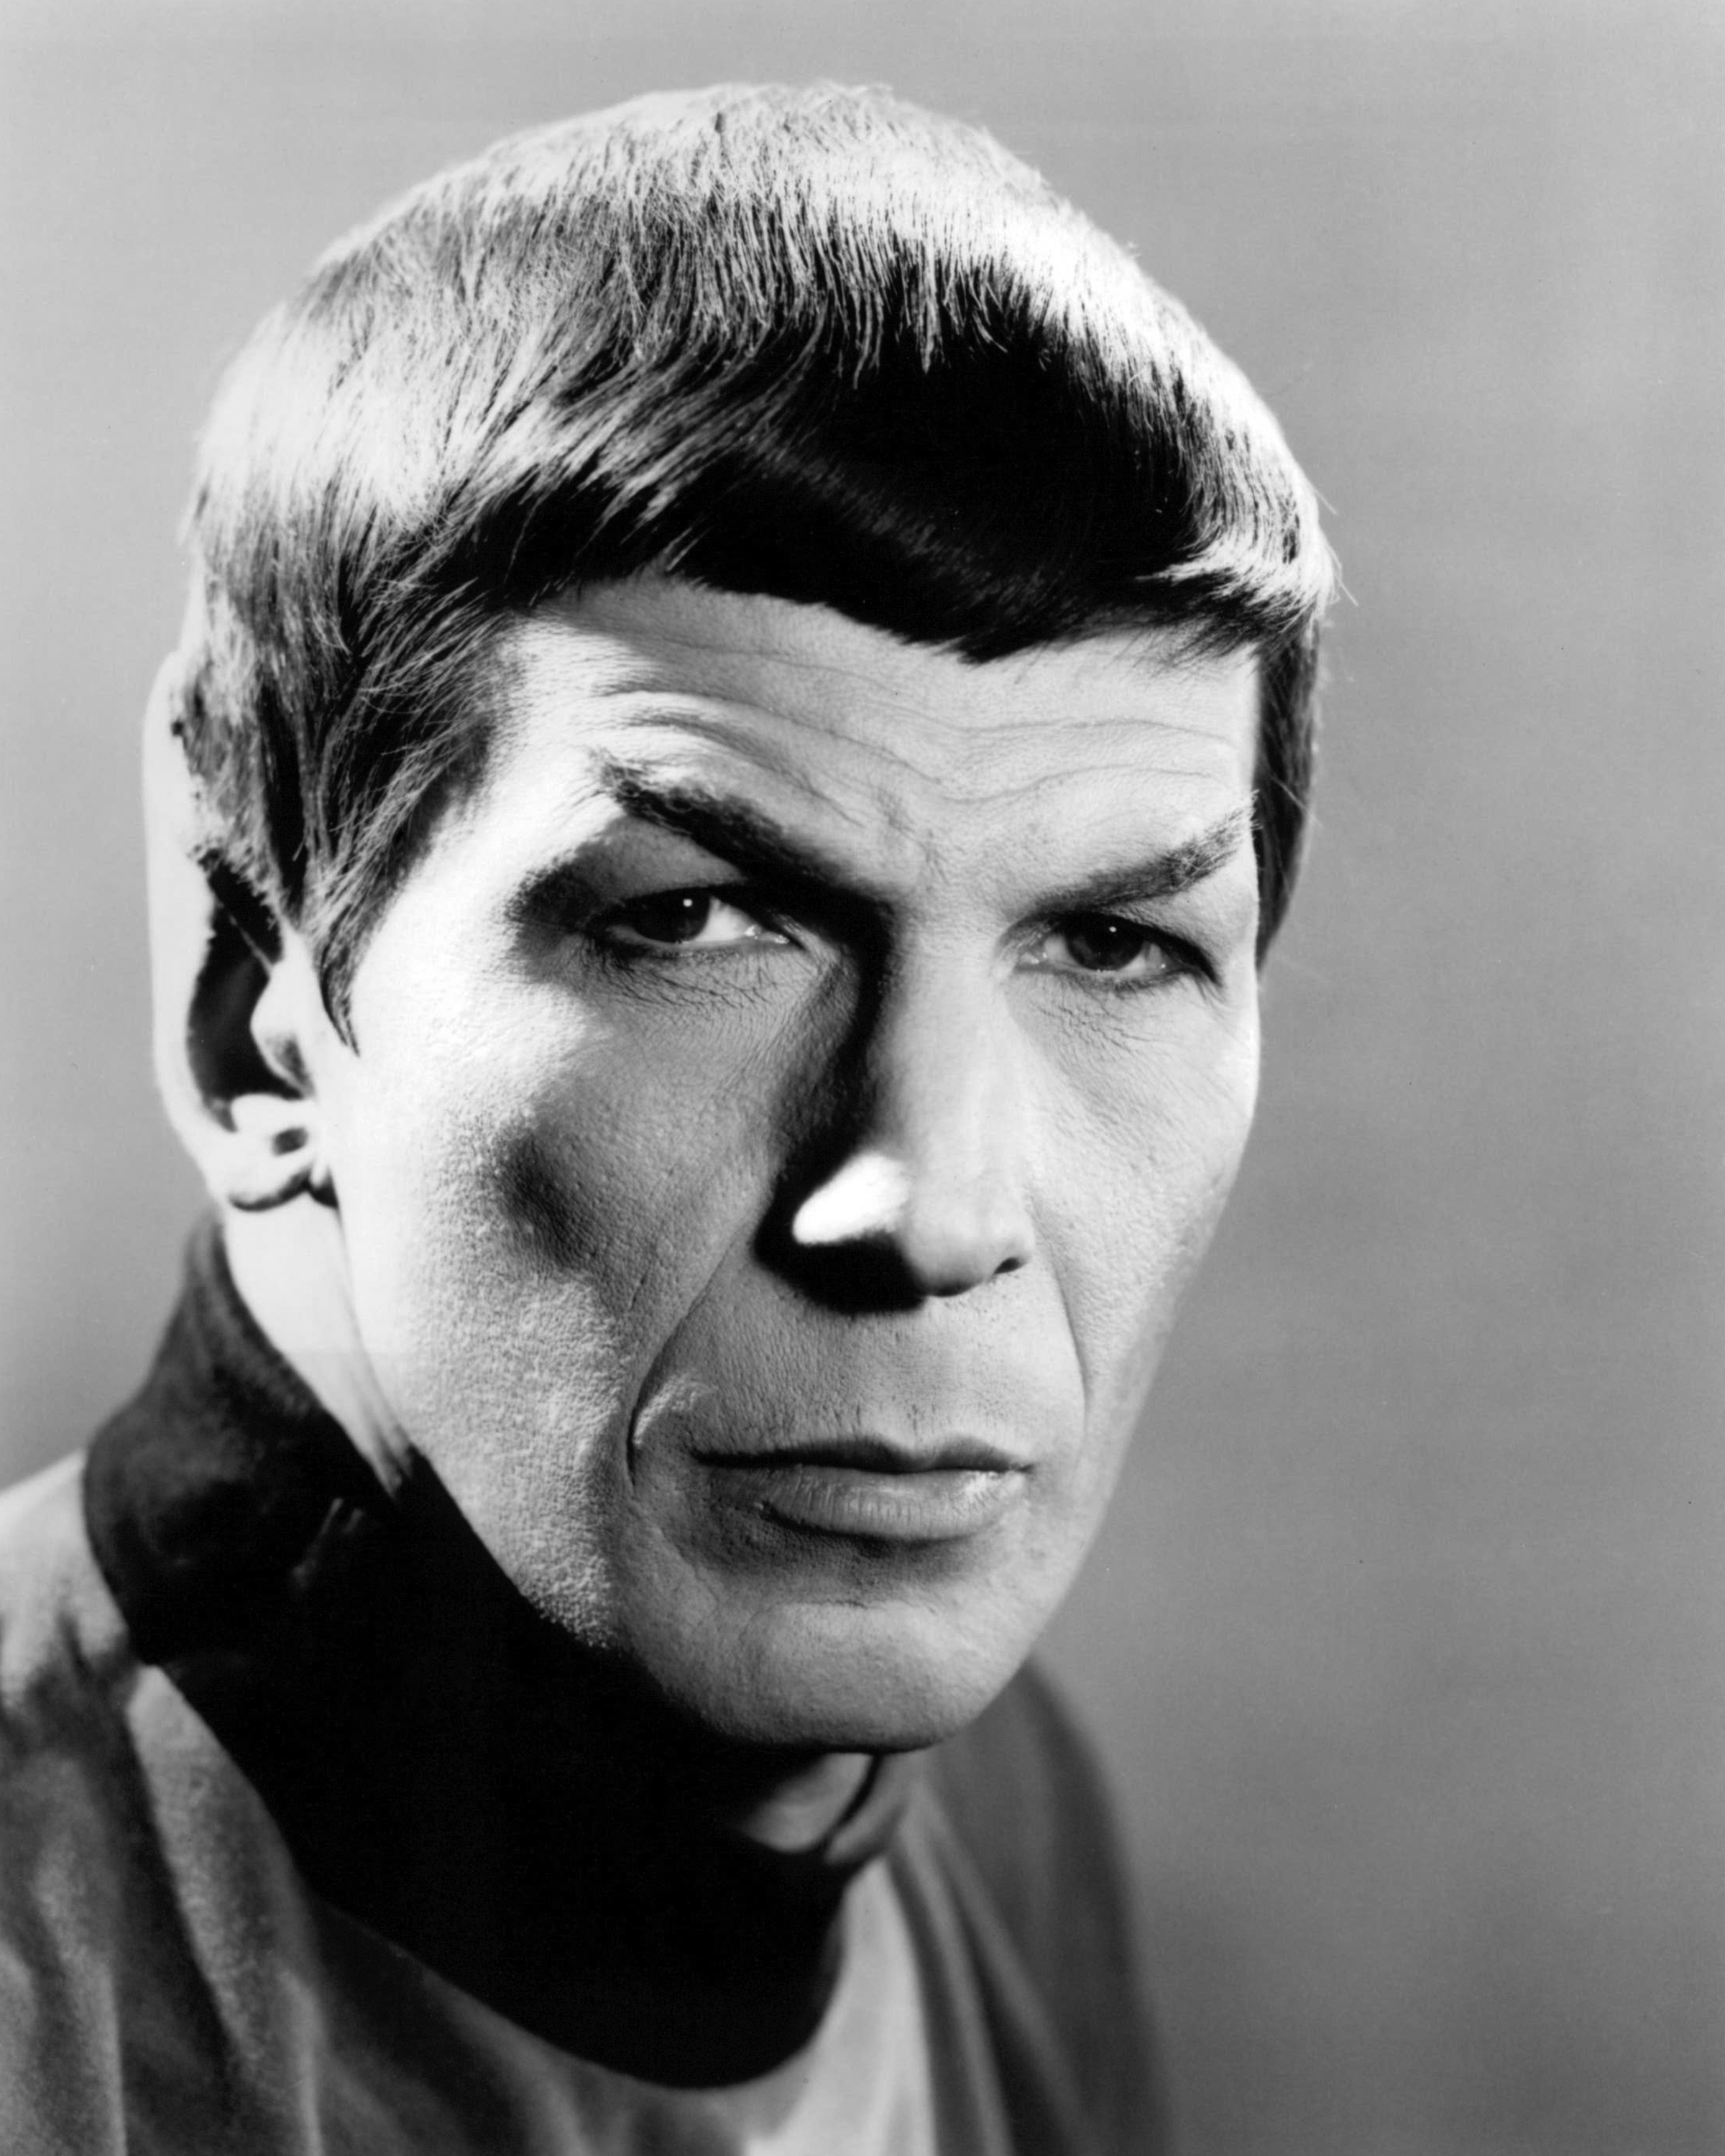 American actor Leonard Nimoy as Spock in the TV series 'Star Trek', circa 1968. (Photo by Silver Screen Collection/Getty Imag